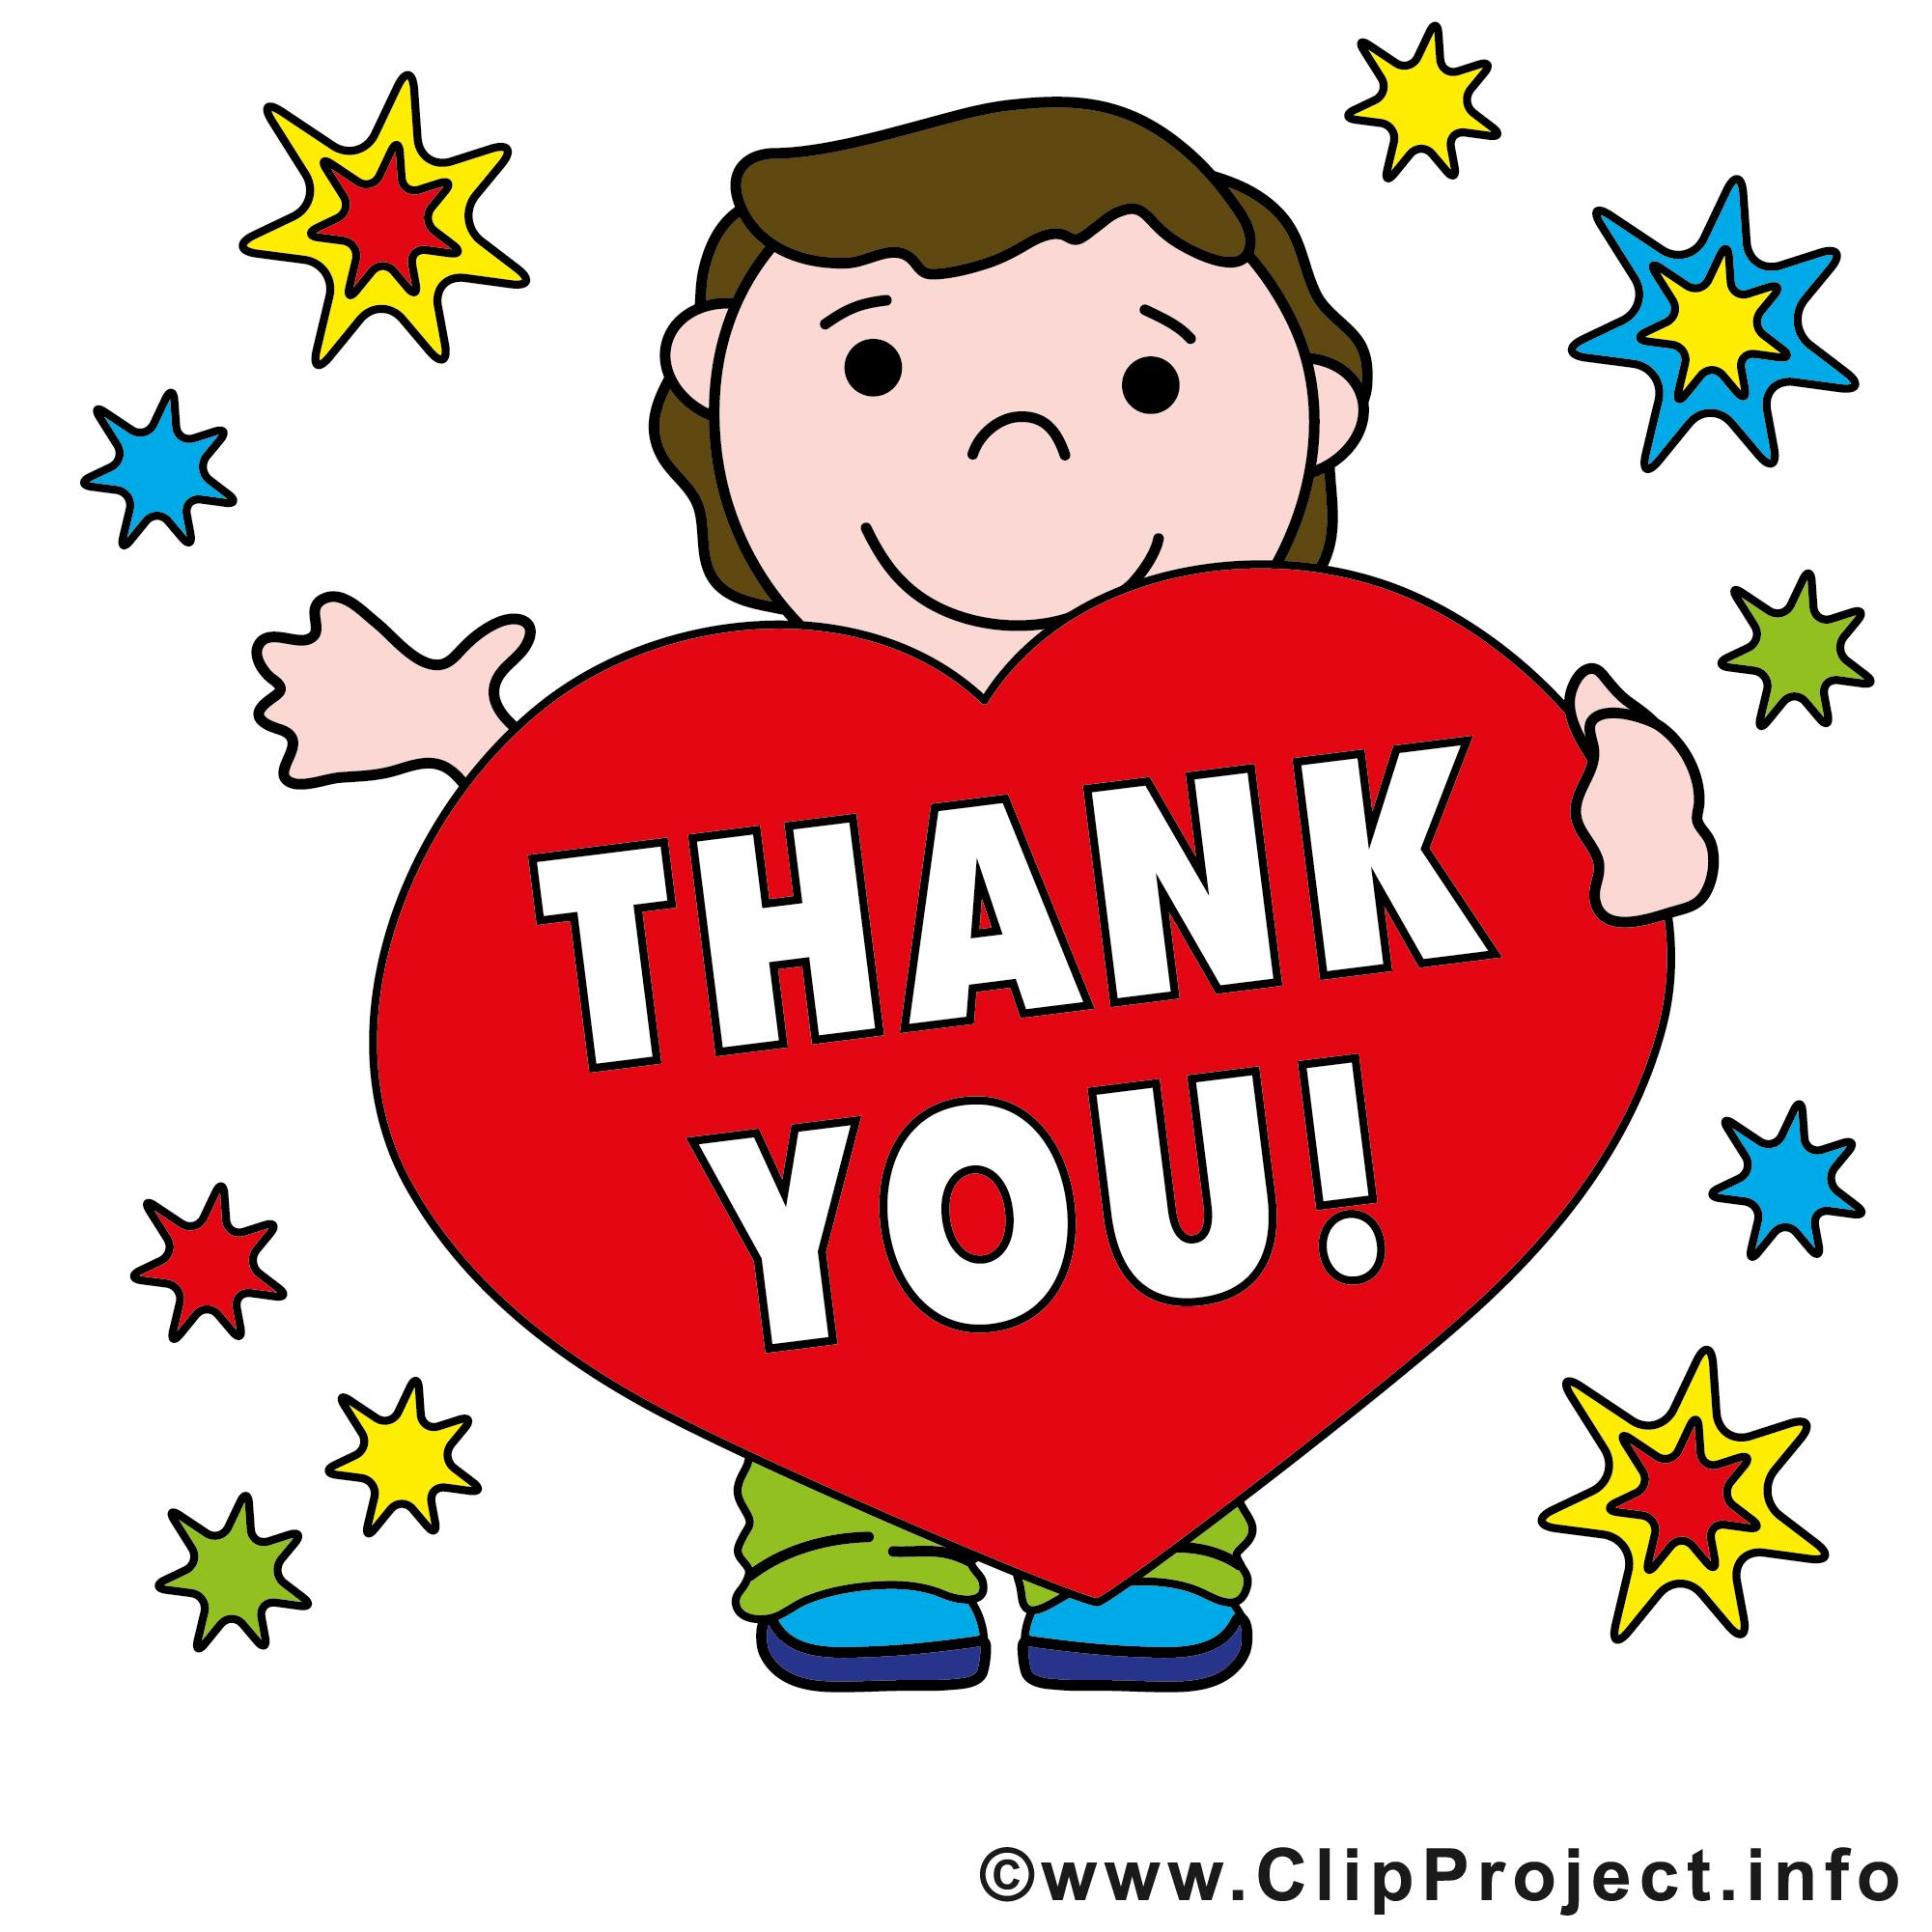 thank you clipart free clipart panda free clipart images 5kwaxs clipart rh clipart info google images free christmas clip art Free Google Cliparts Thanksgiving